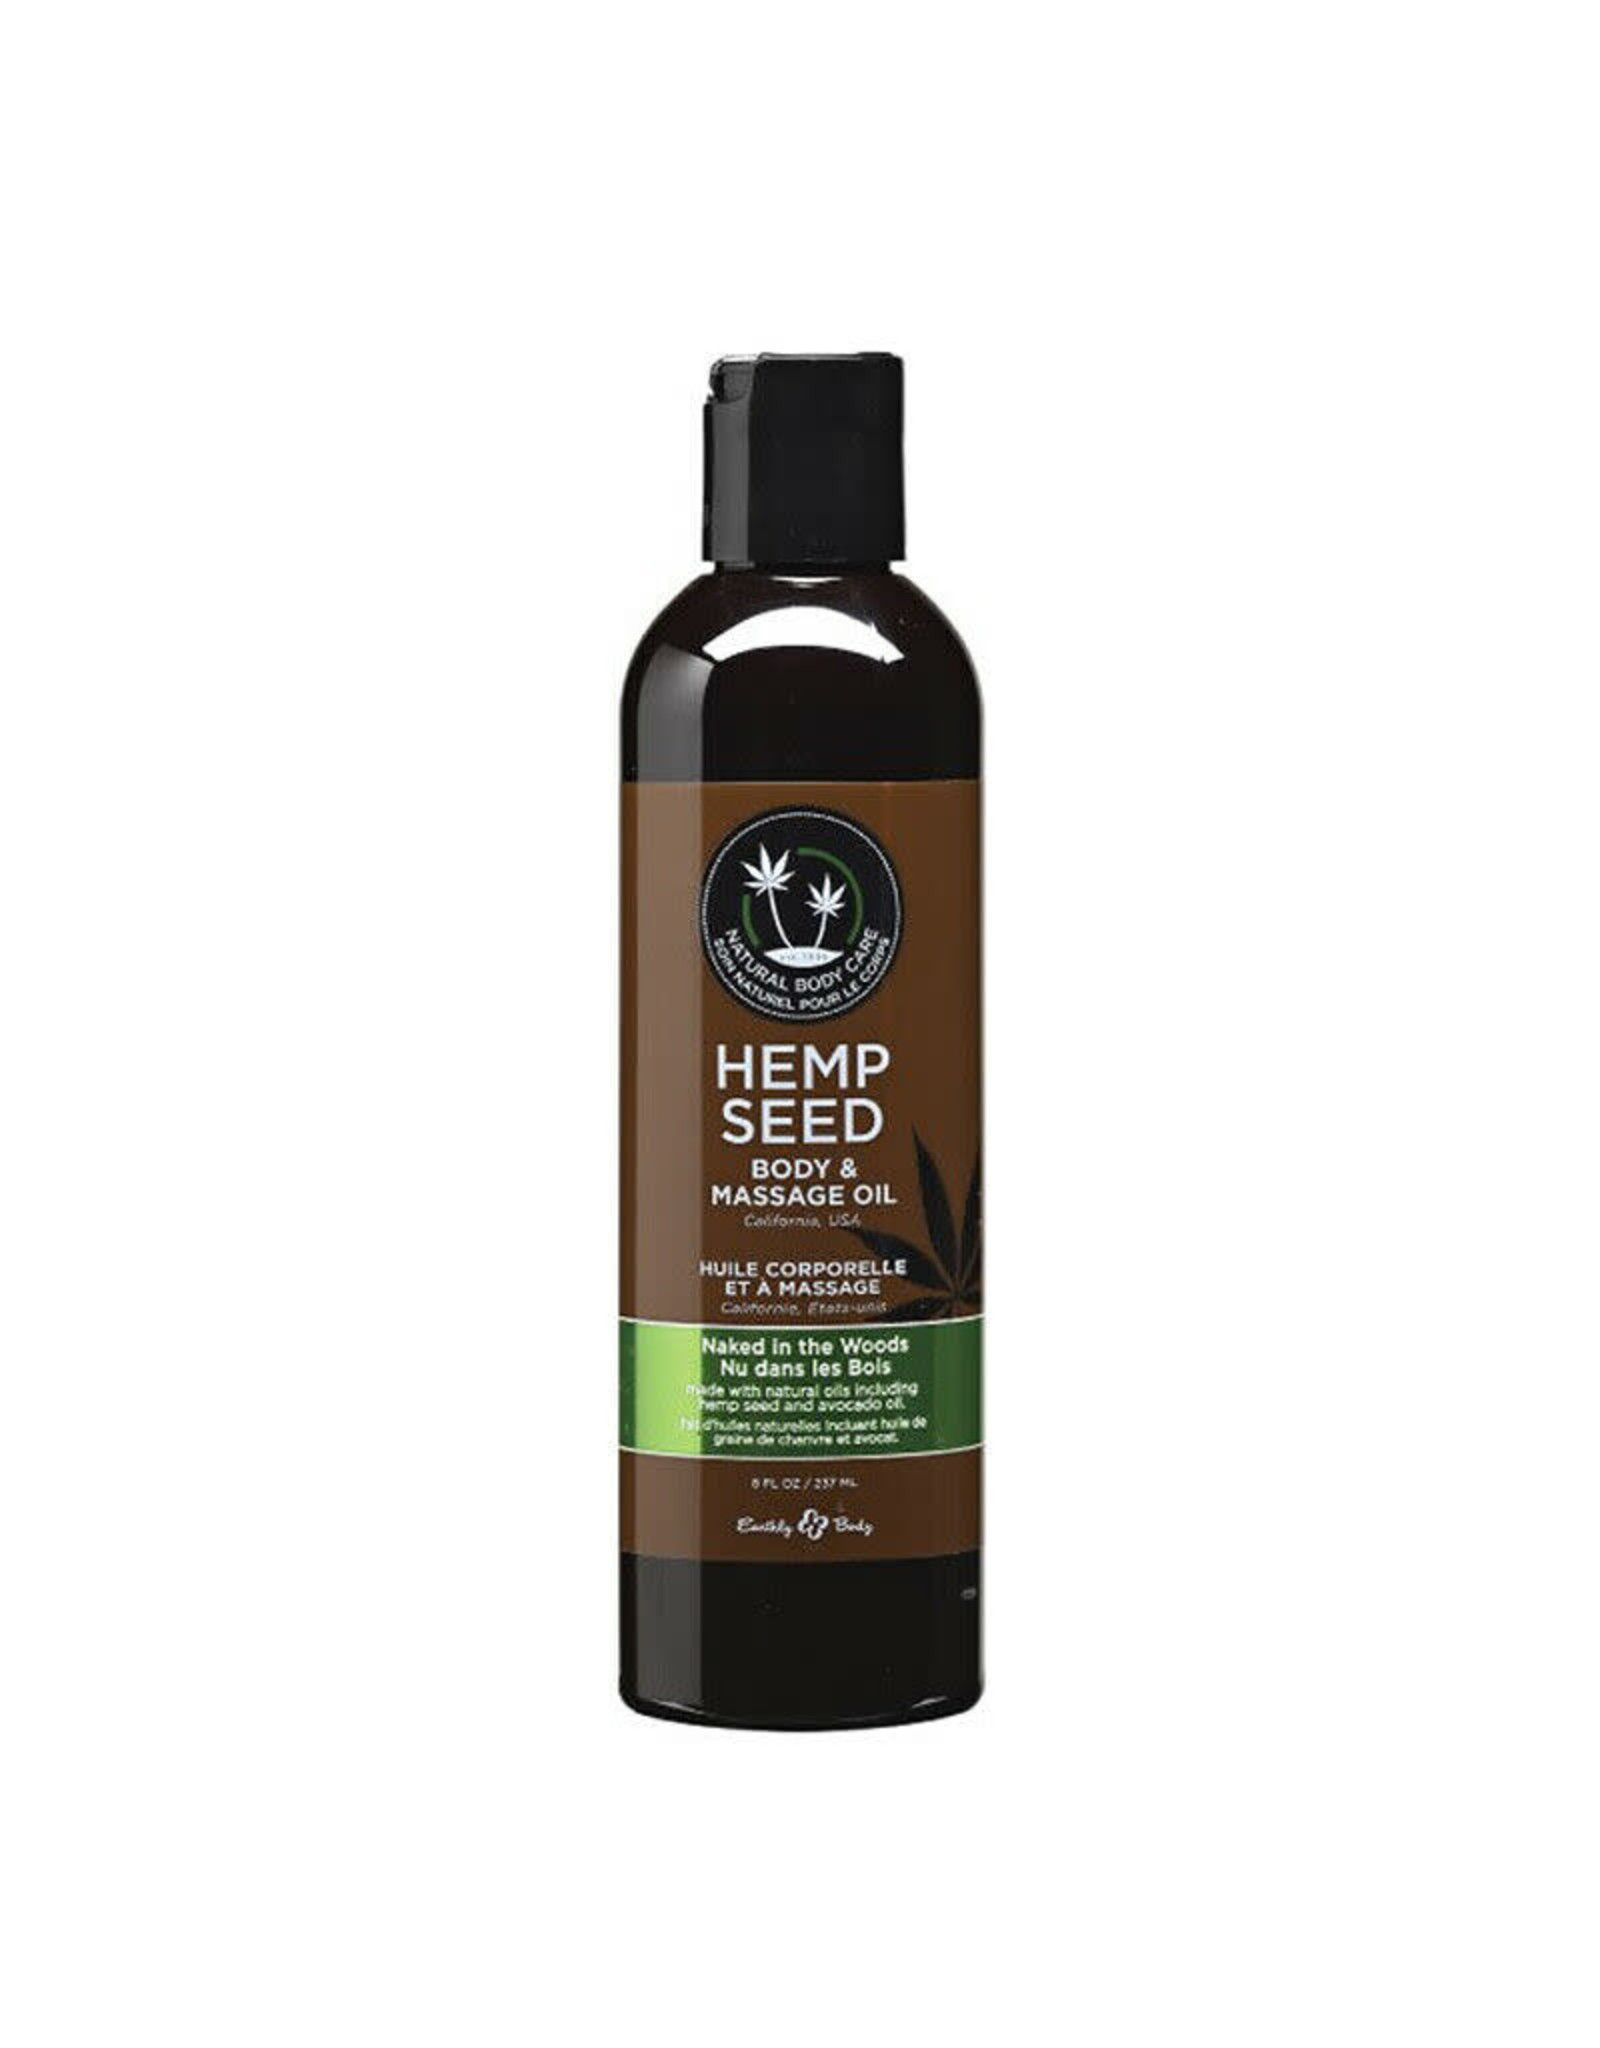 EARTHLY BODY EARTHLY BODIES - HEMP SEED MASSAGE OIL - NAKED IN THE WOODS 8oz